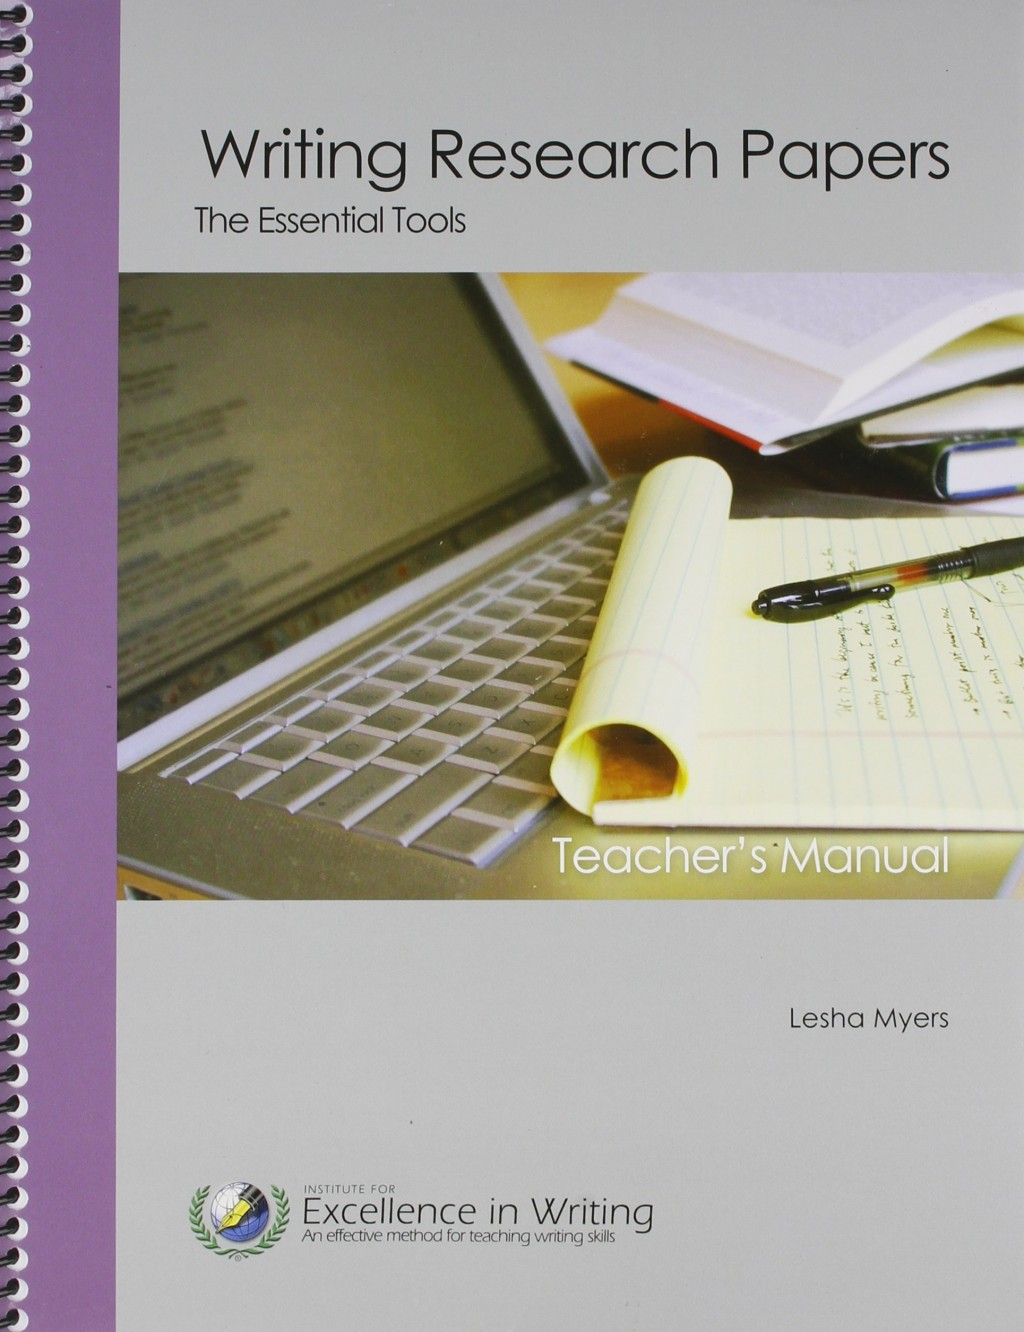 021 91ax63bn6xl Writing Research Striking Paper Papers Lester 16th Edition A Complete Guide James D. Large